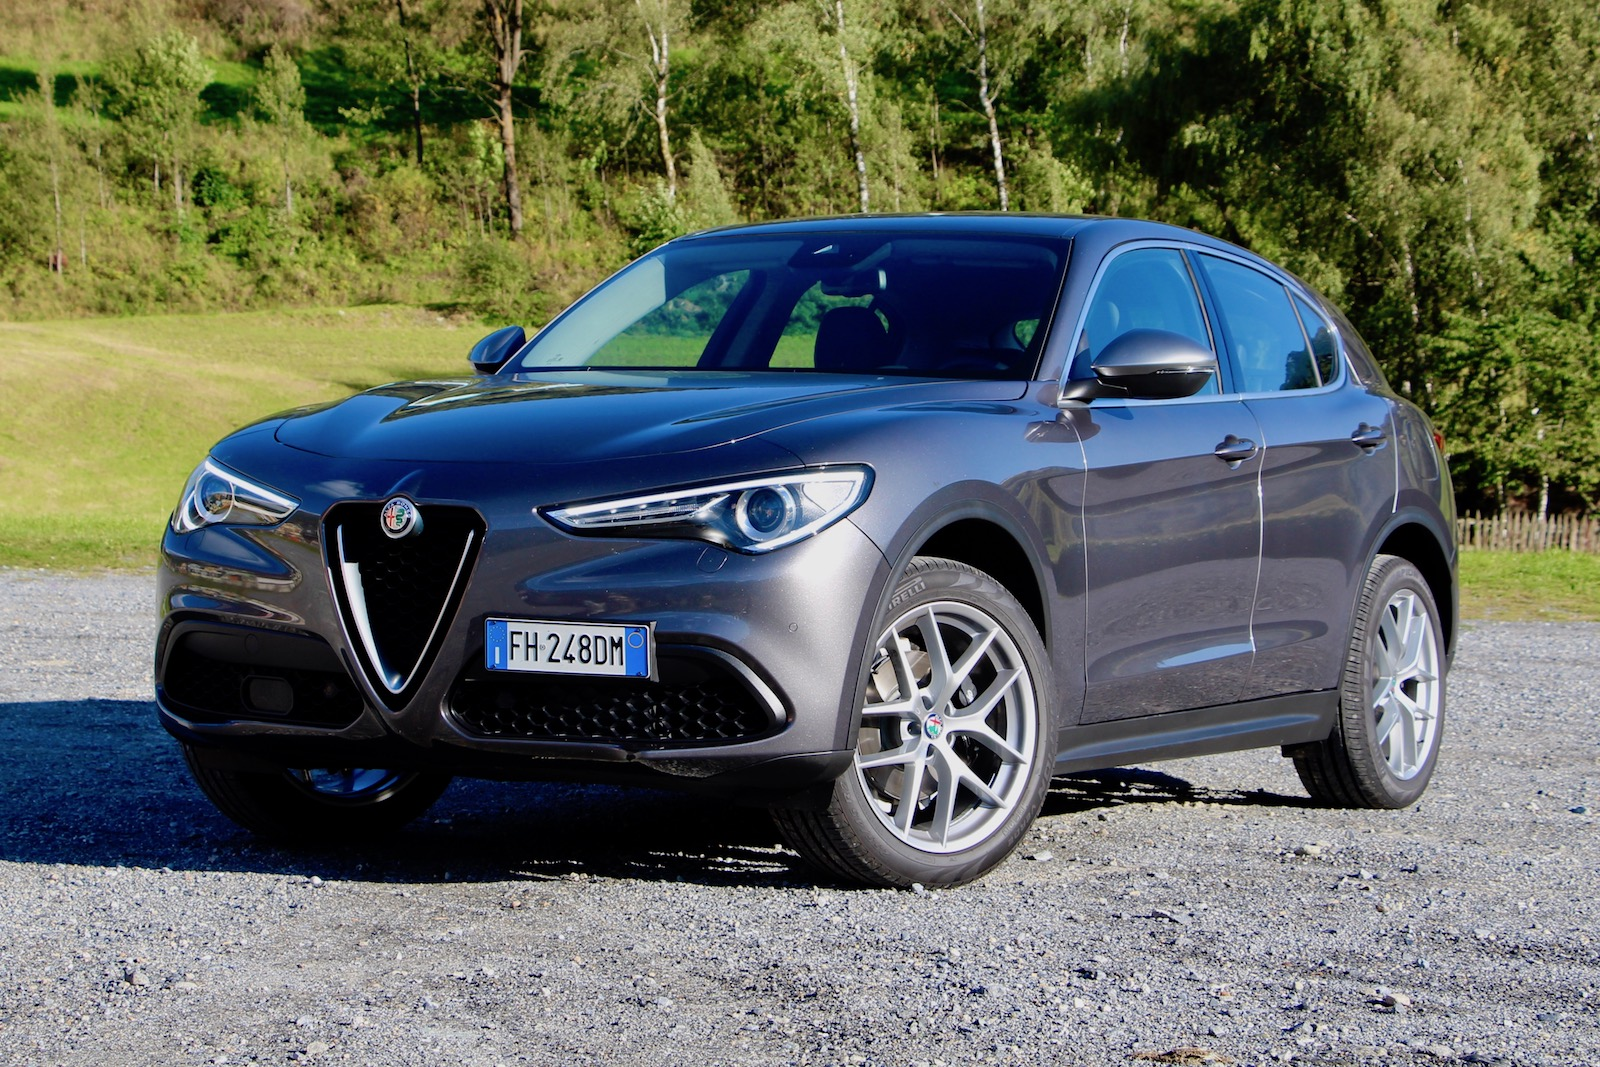 Mercedes Benz Models >> 2018 Alfa Romeo Stelvio First Drive Review - AutoGuide.com